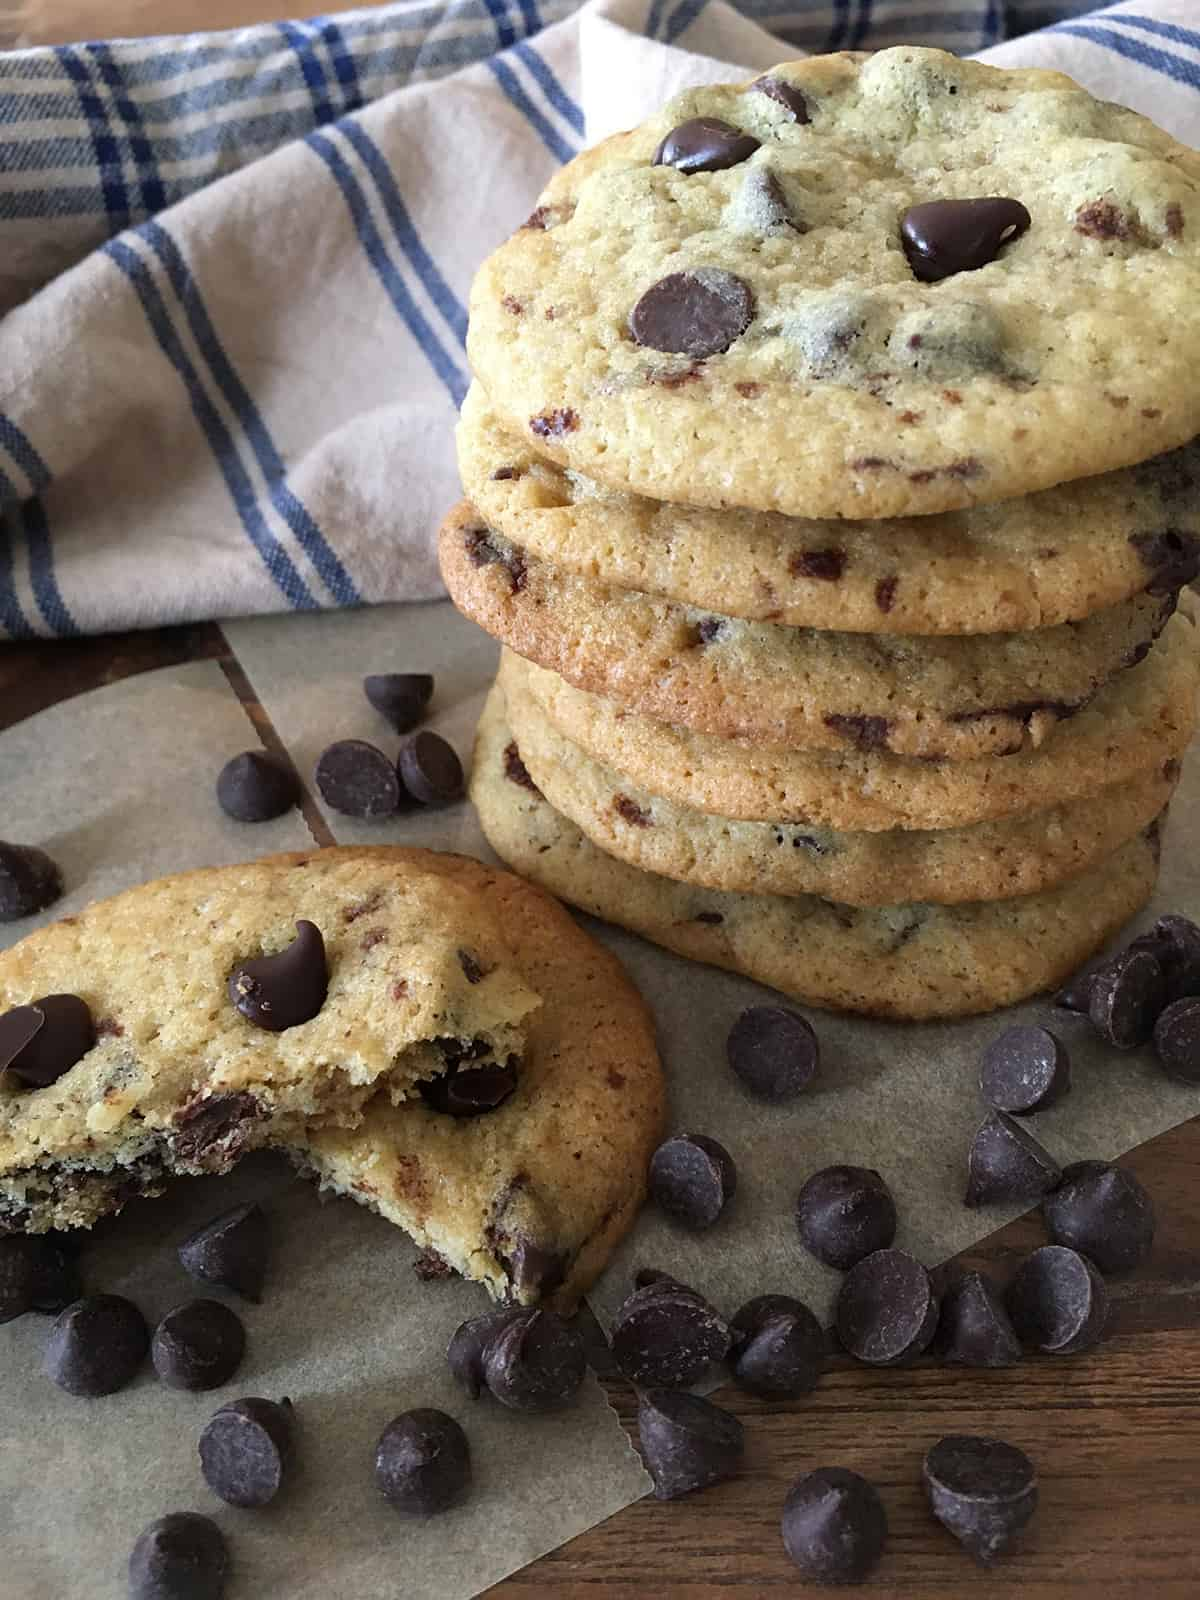 Chocolate chip cookies in a stack with a blue and tan plaid napkin on a dark brown table